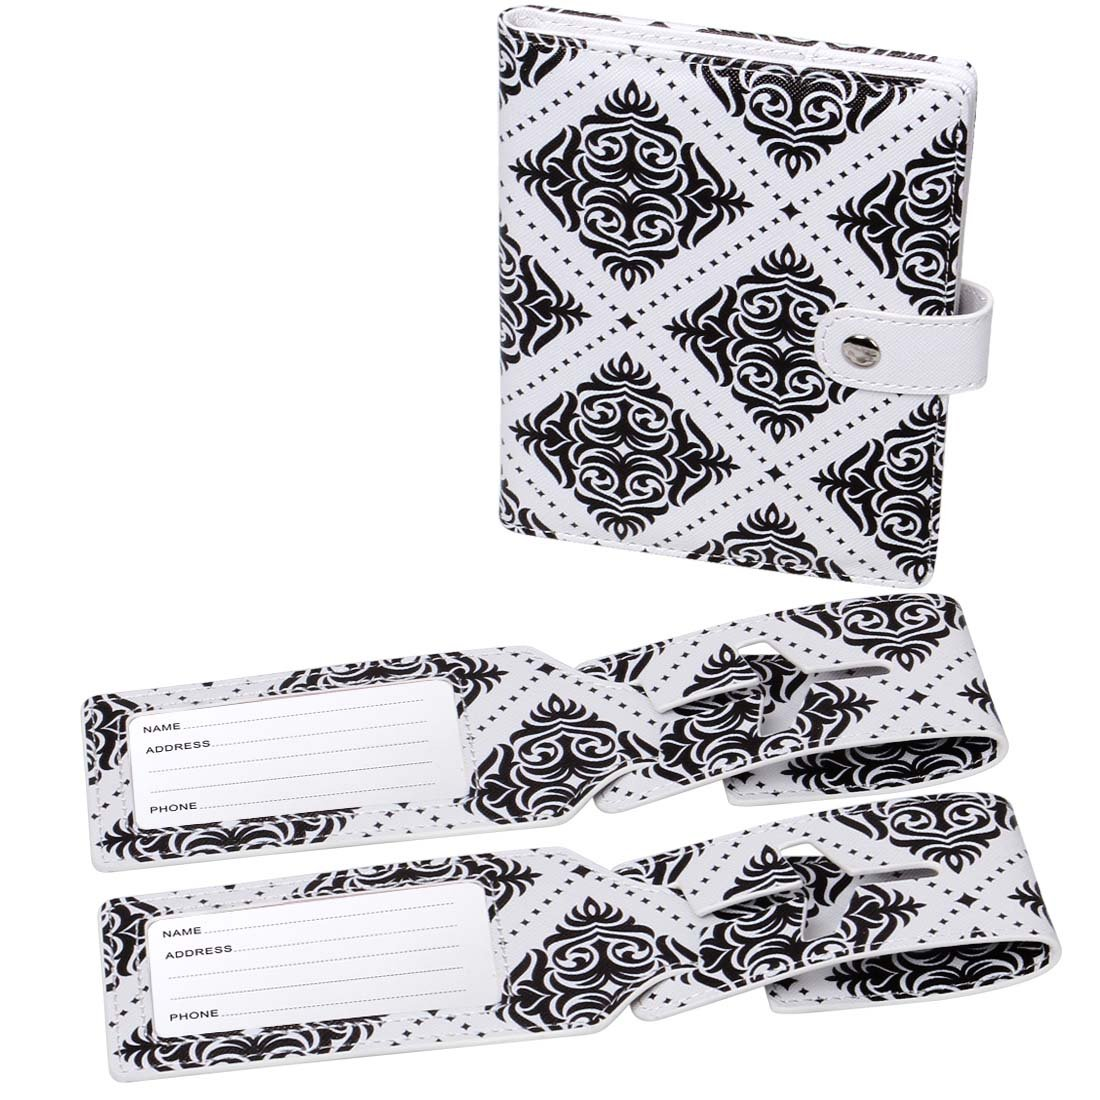 RoryTory Damask Black RFID Protection Passport Case Holder And 2 Luggage Tags